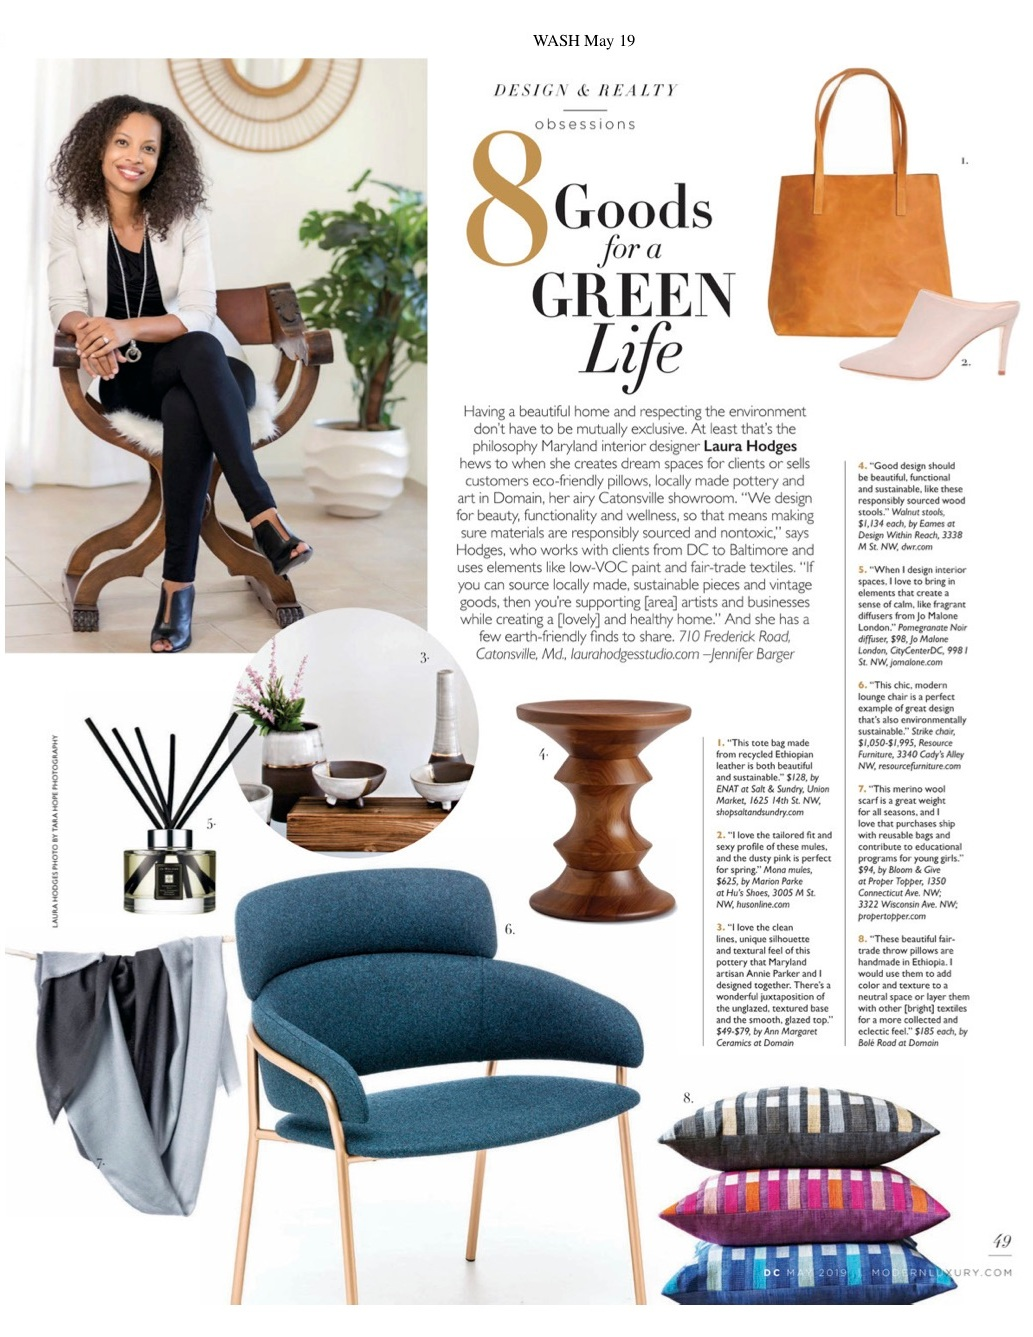 DC MODERN LUXURY MAGAZINE, MAY 2019